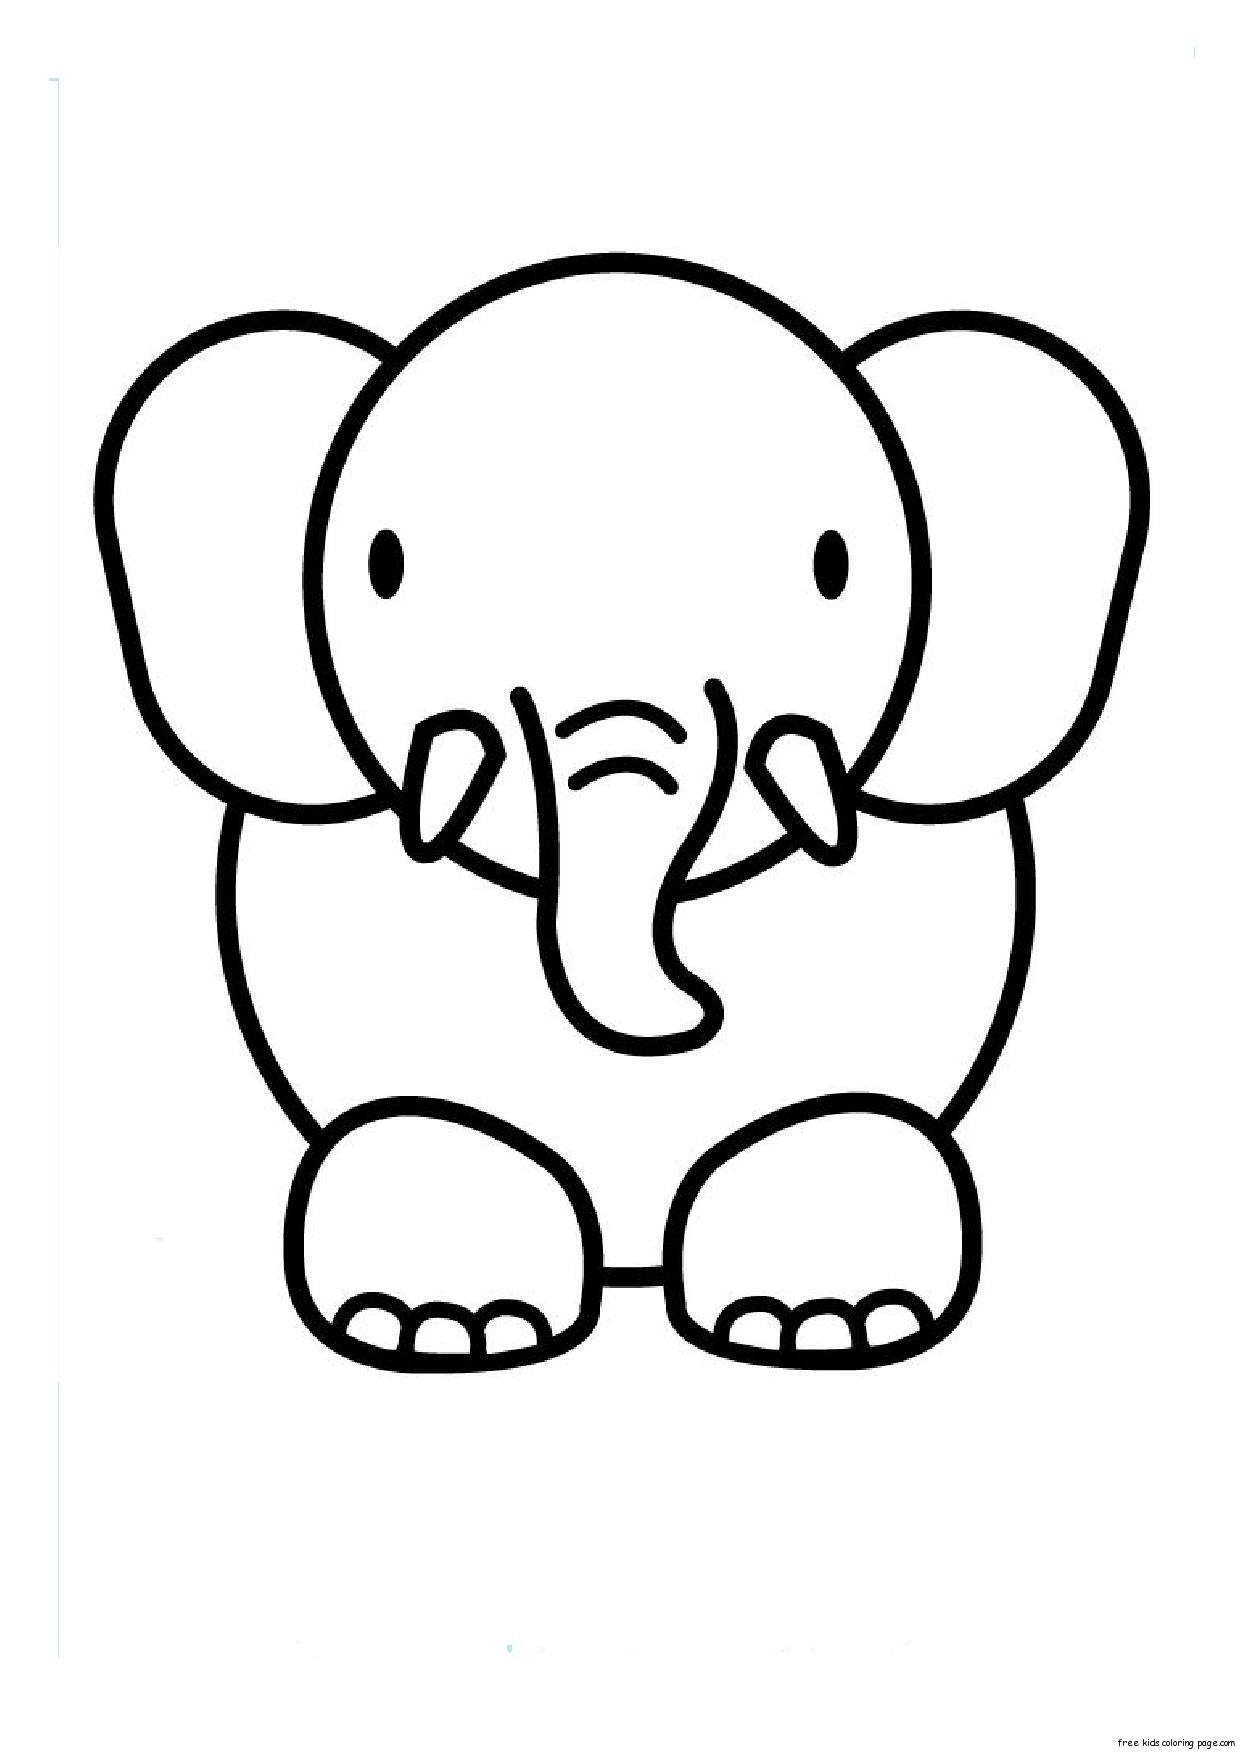 Print Out Animal Elephant Coloring Pages For KidsFree